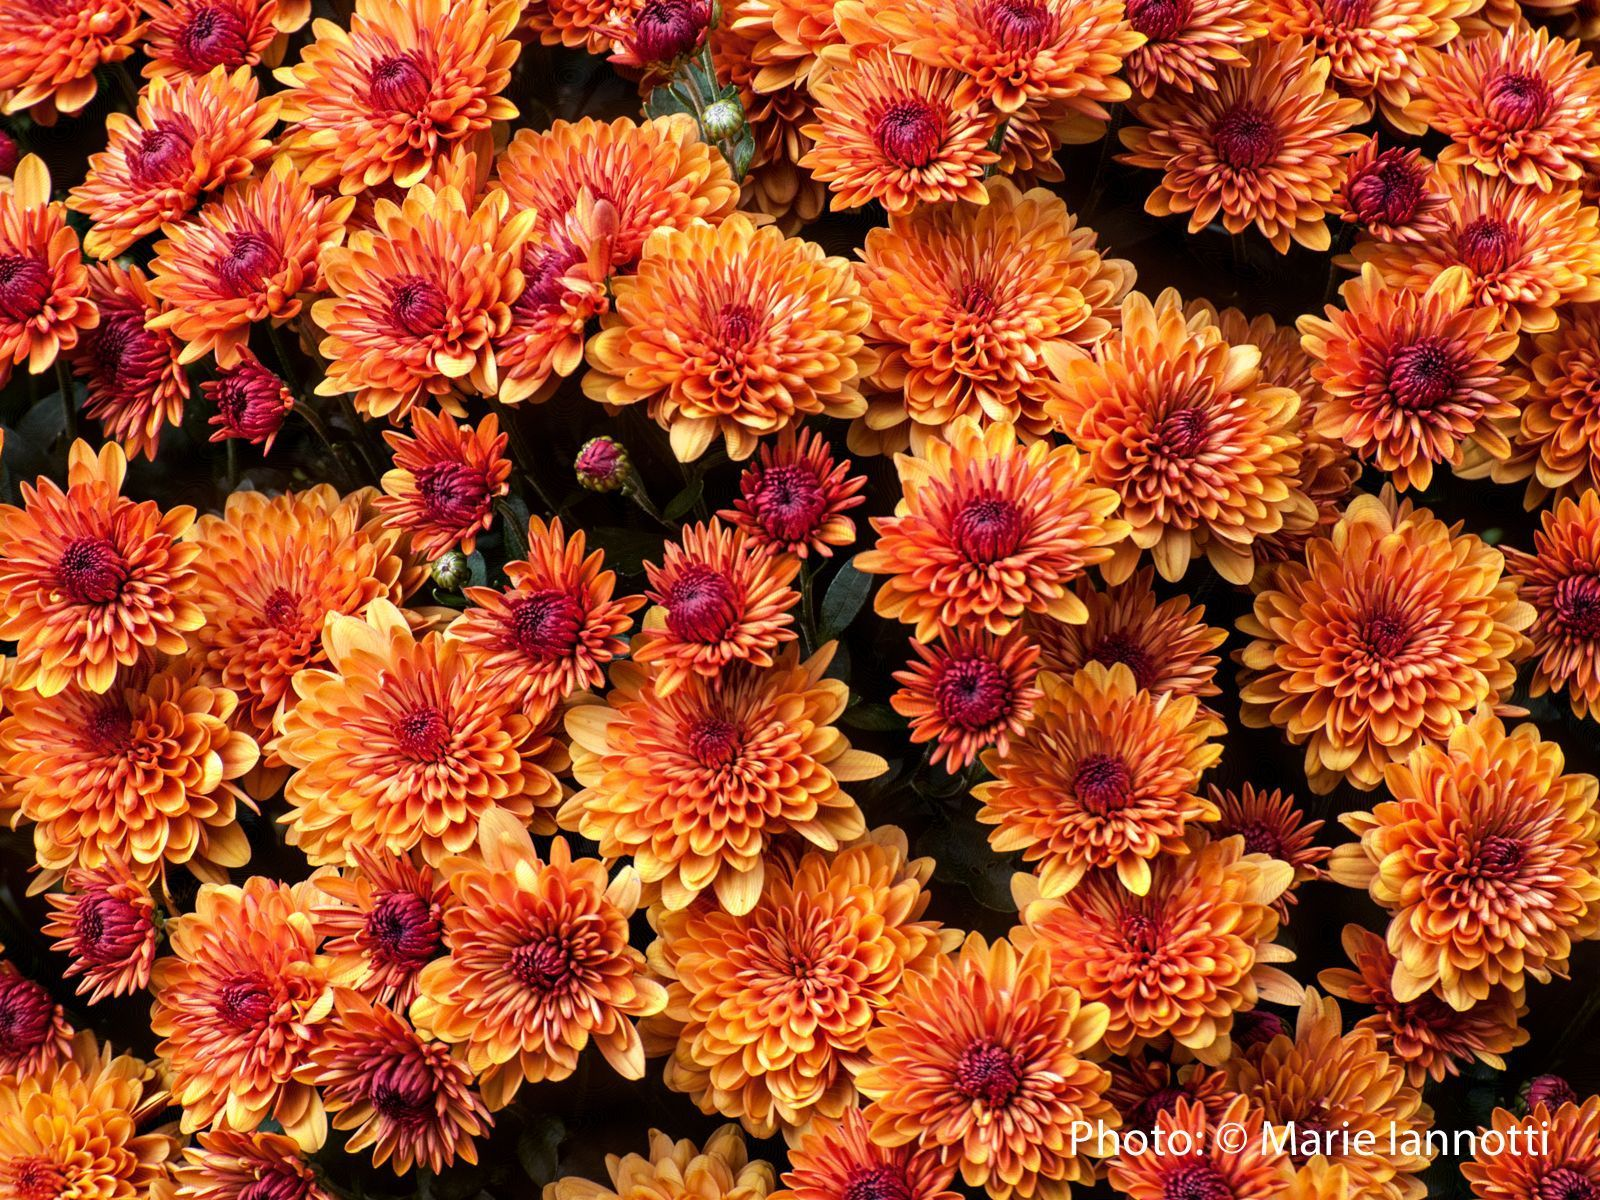 Fall garden mums will they come back next spring garden mum fall garden mums will they come back next spring izmirmasajfo